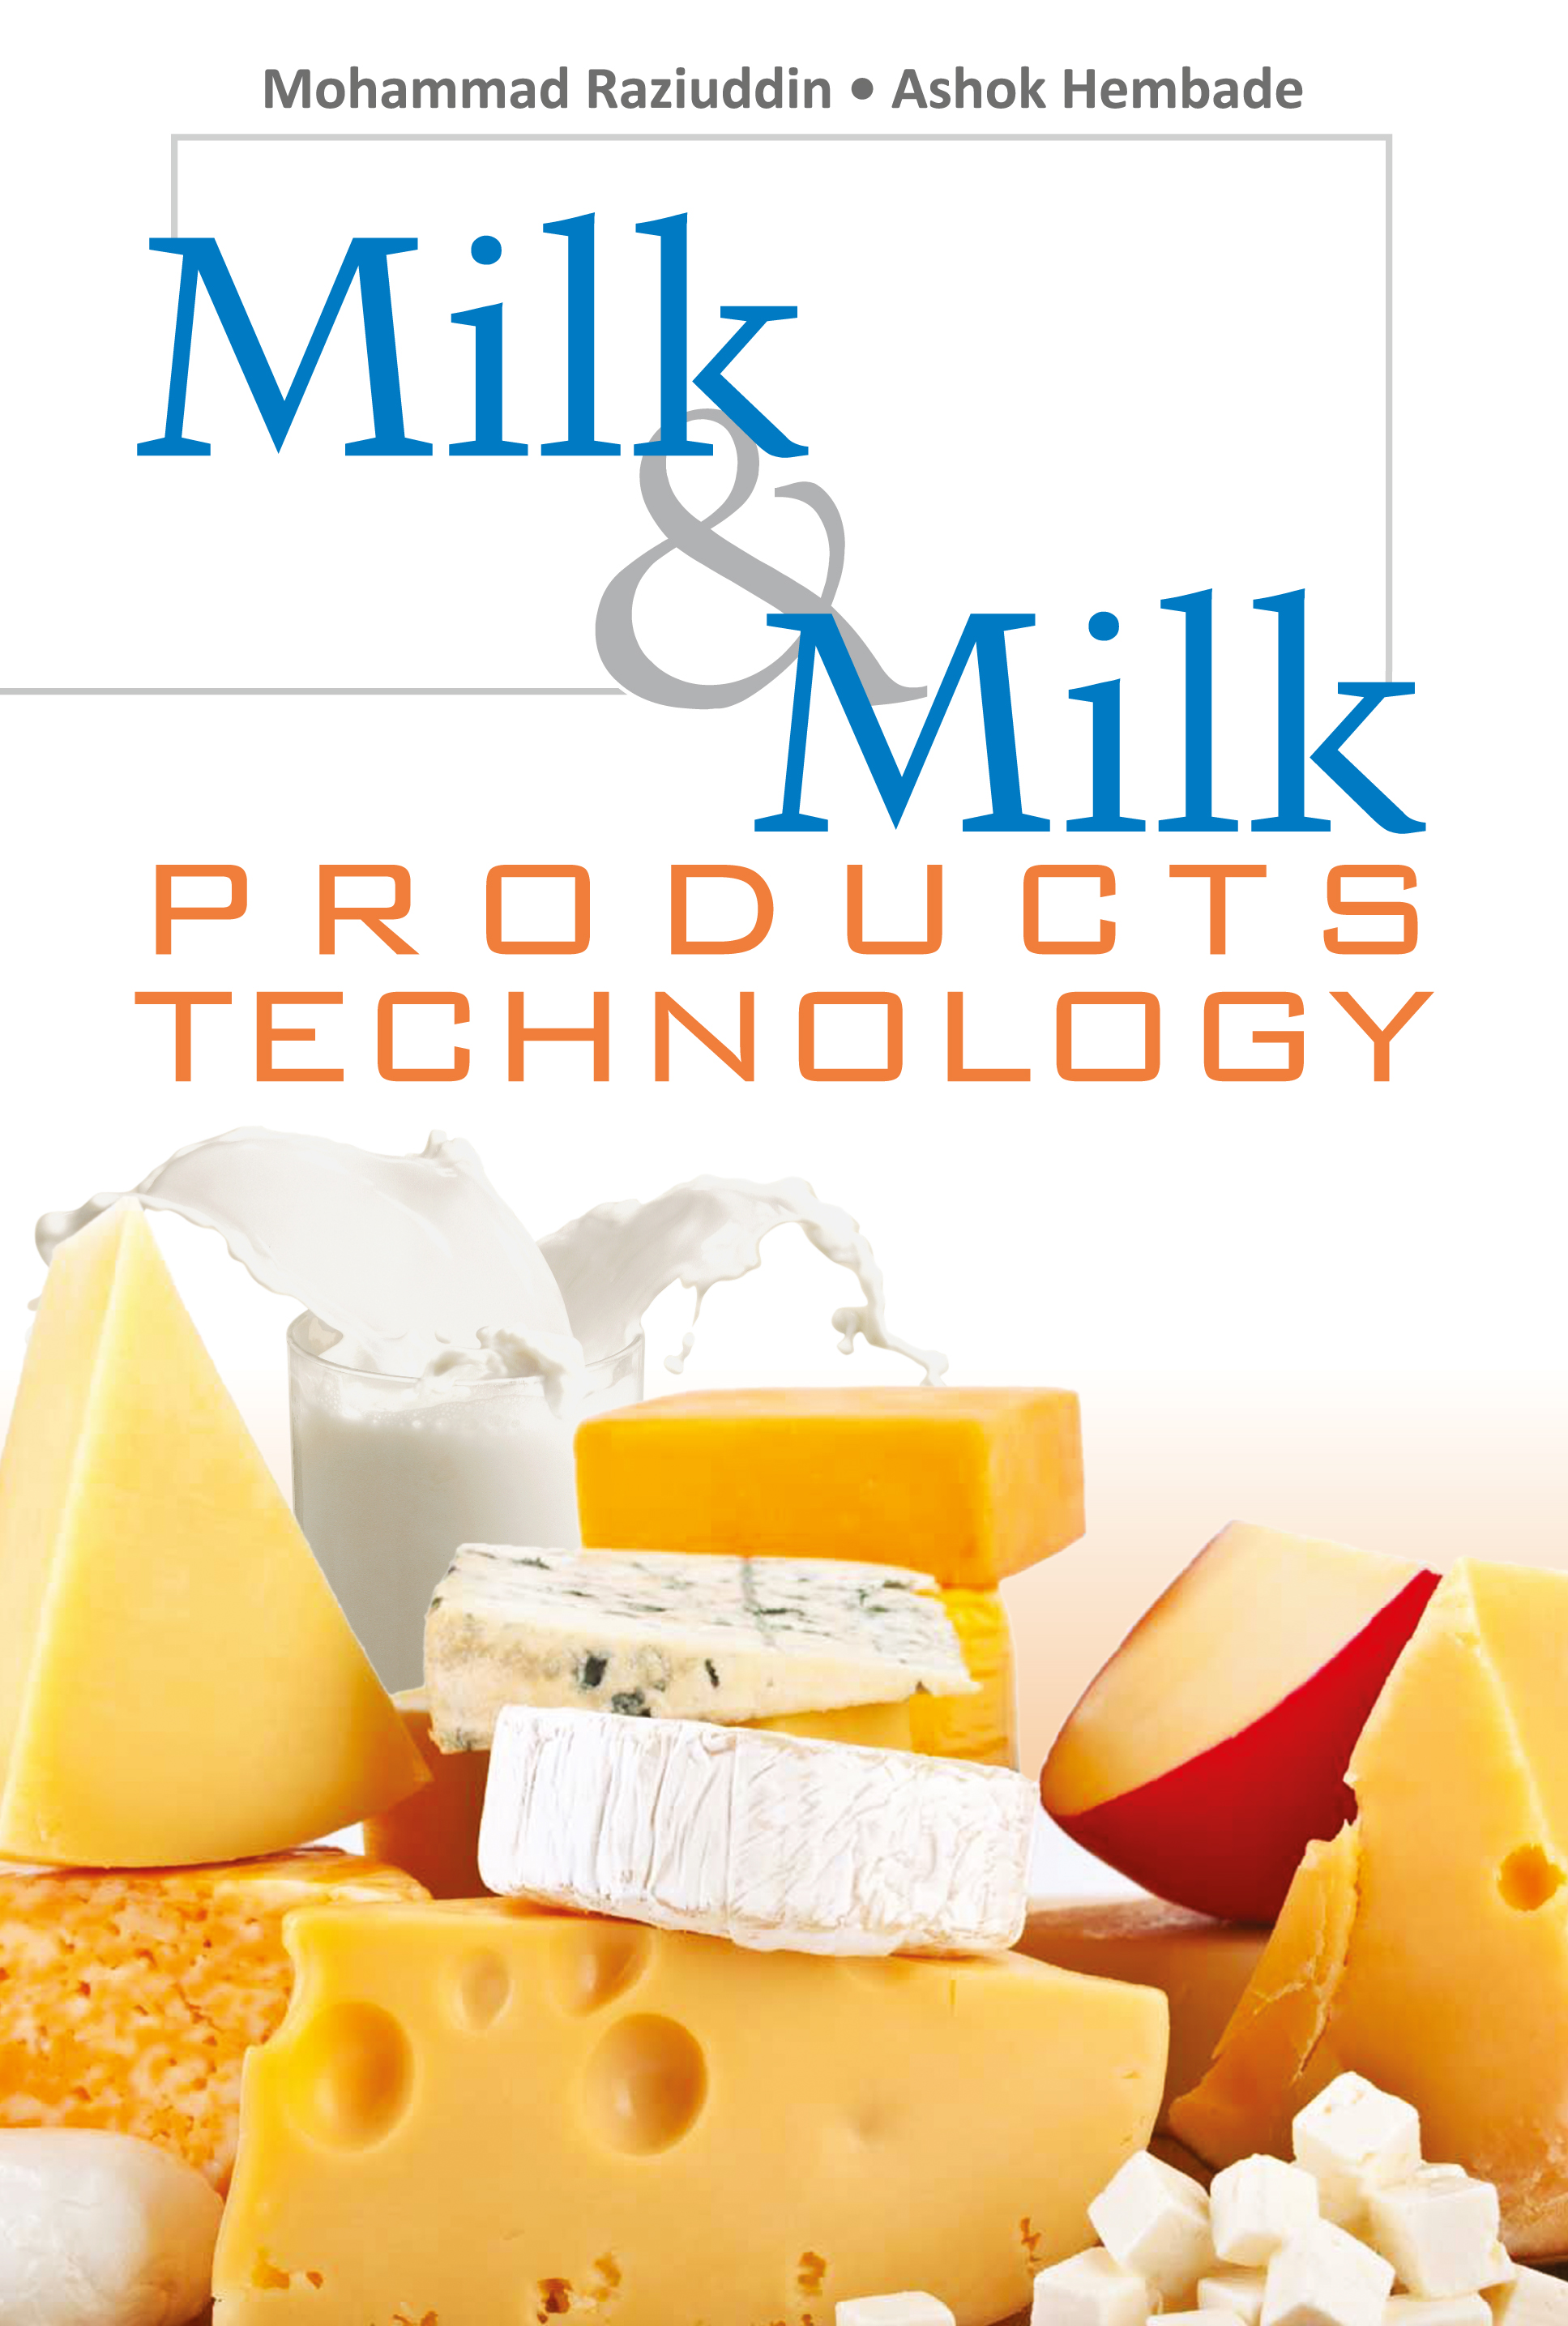 Milk and Milk Product Technology